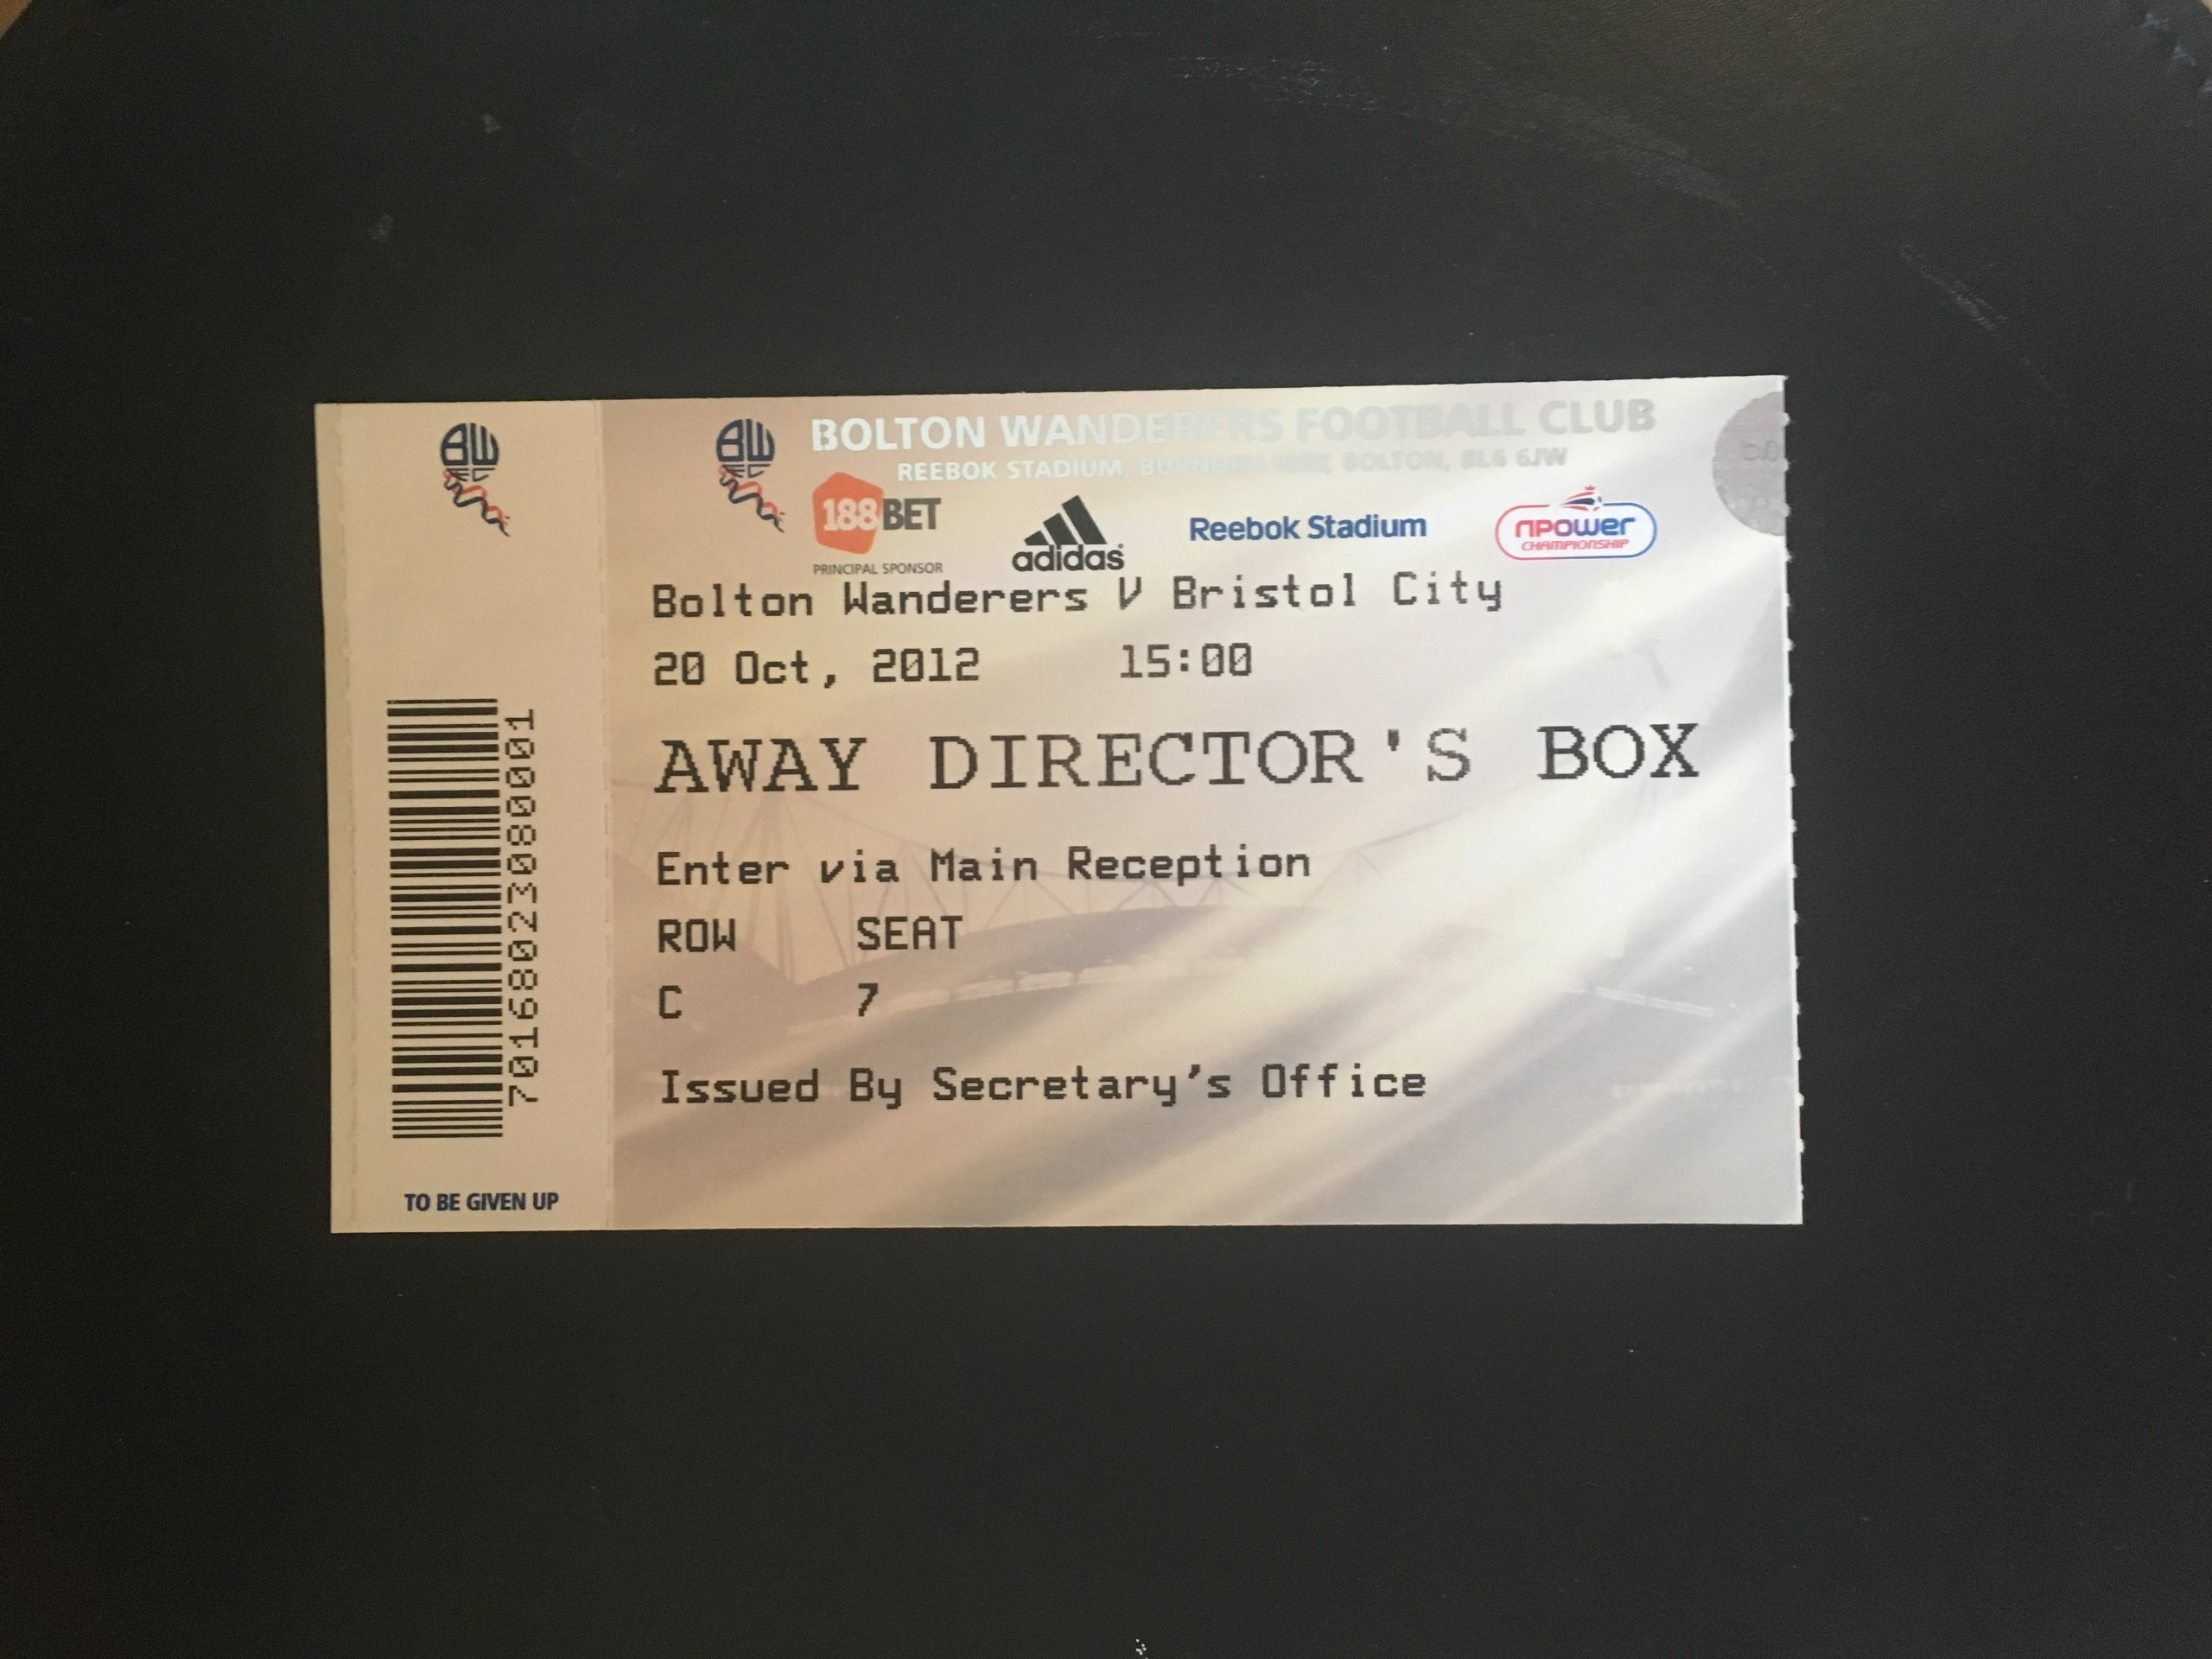 Bolton Wanderers v Bristol City 20-10-12 Ticket